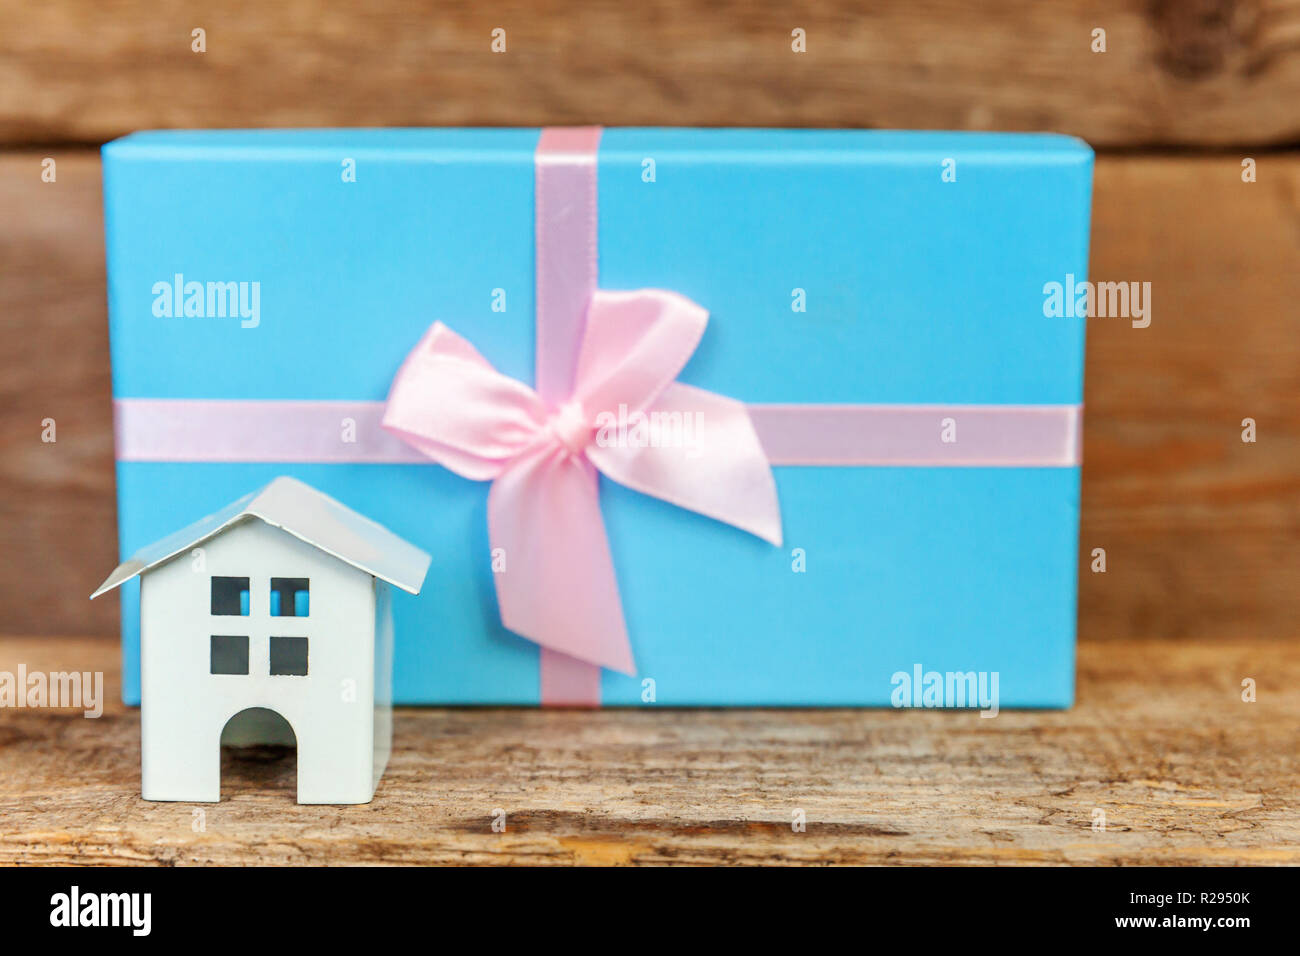 Housewarming Gifts For Young Couples Housewarming Gift Stock Photos Housewarming Gift Stock Images